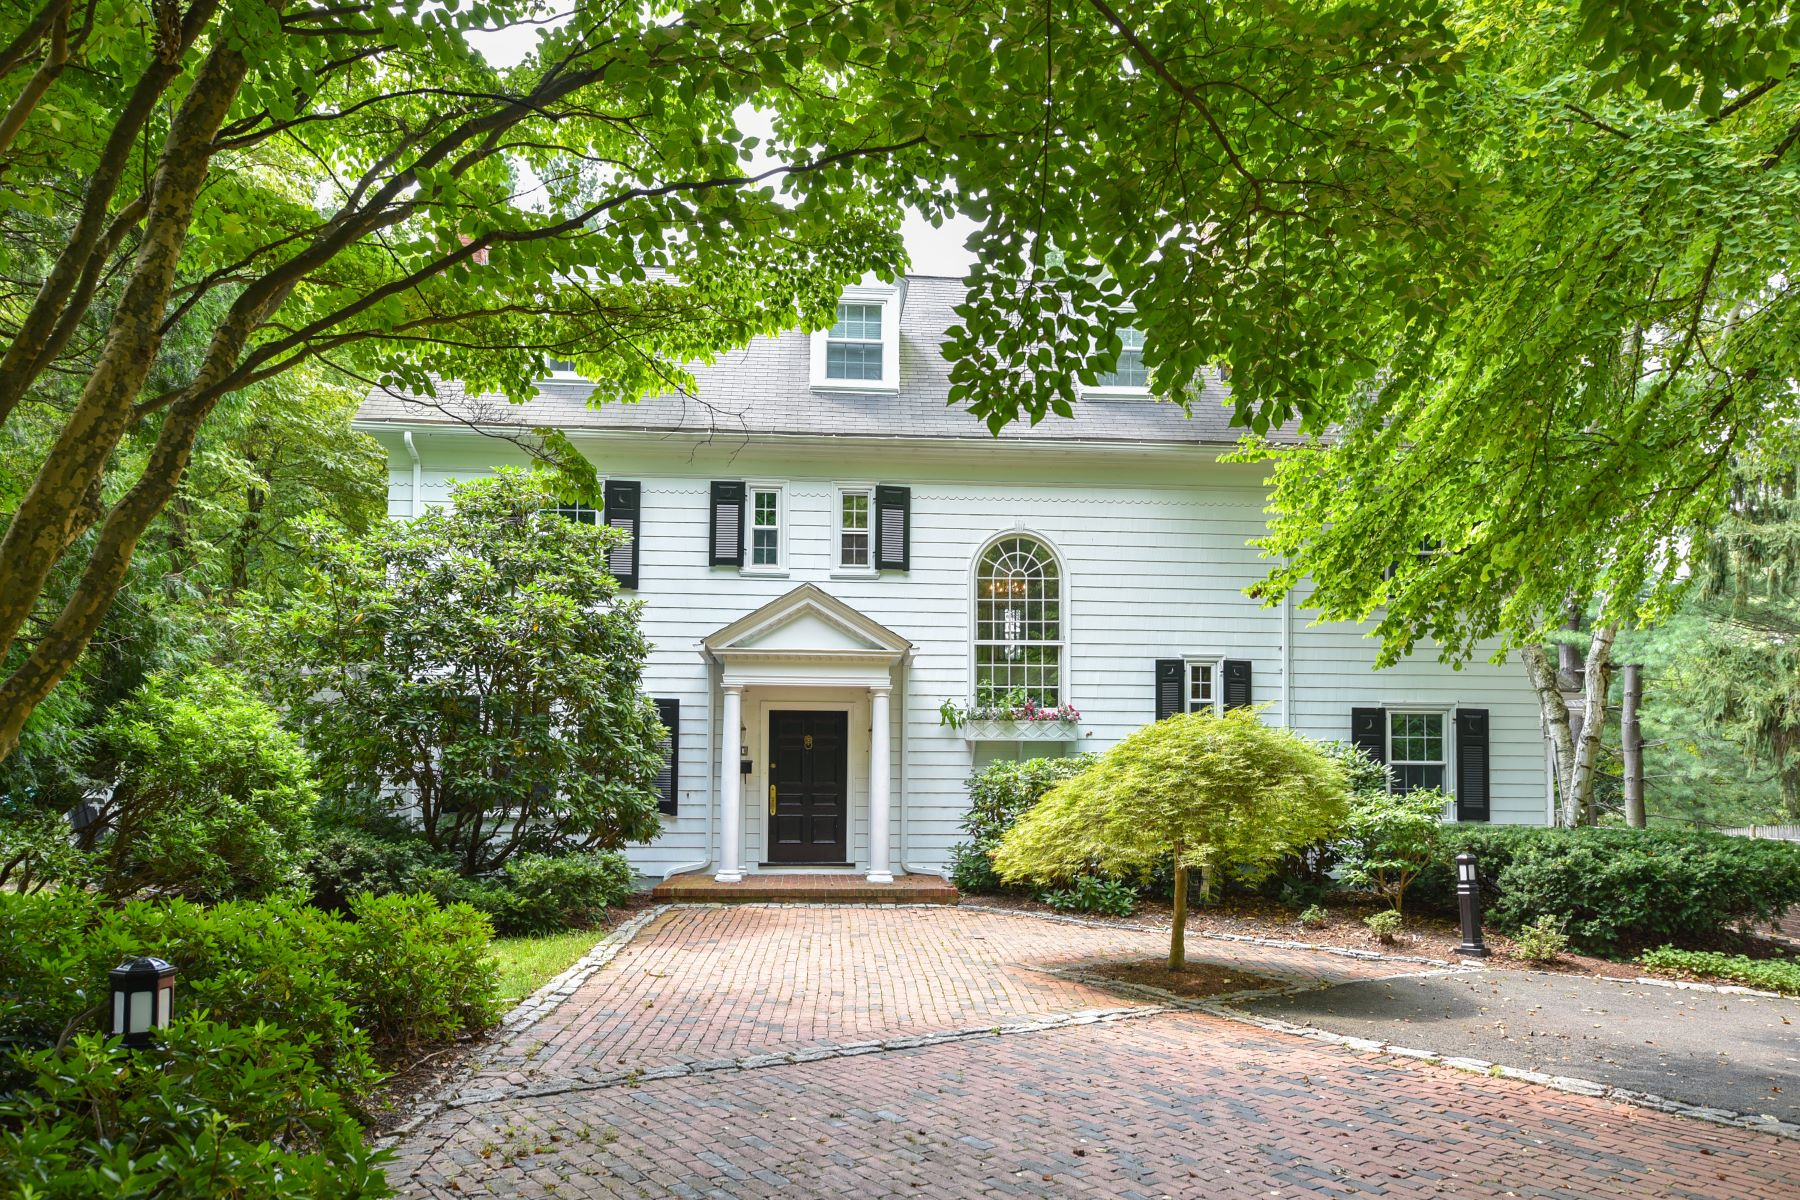 Single Family Homes for Sale at Historic 1915 Colonial Revival 211 South Main Street West Hartford, Connecticut 06107 United States